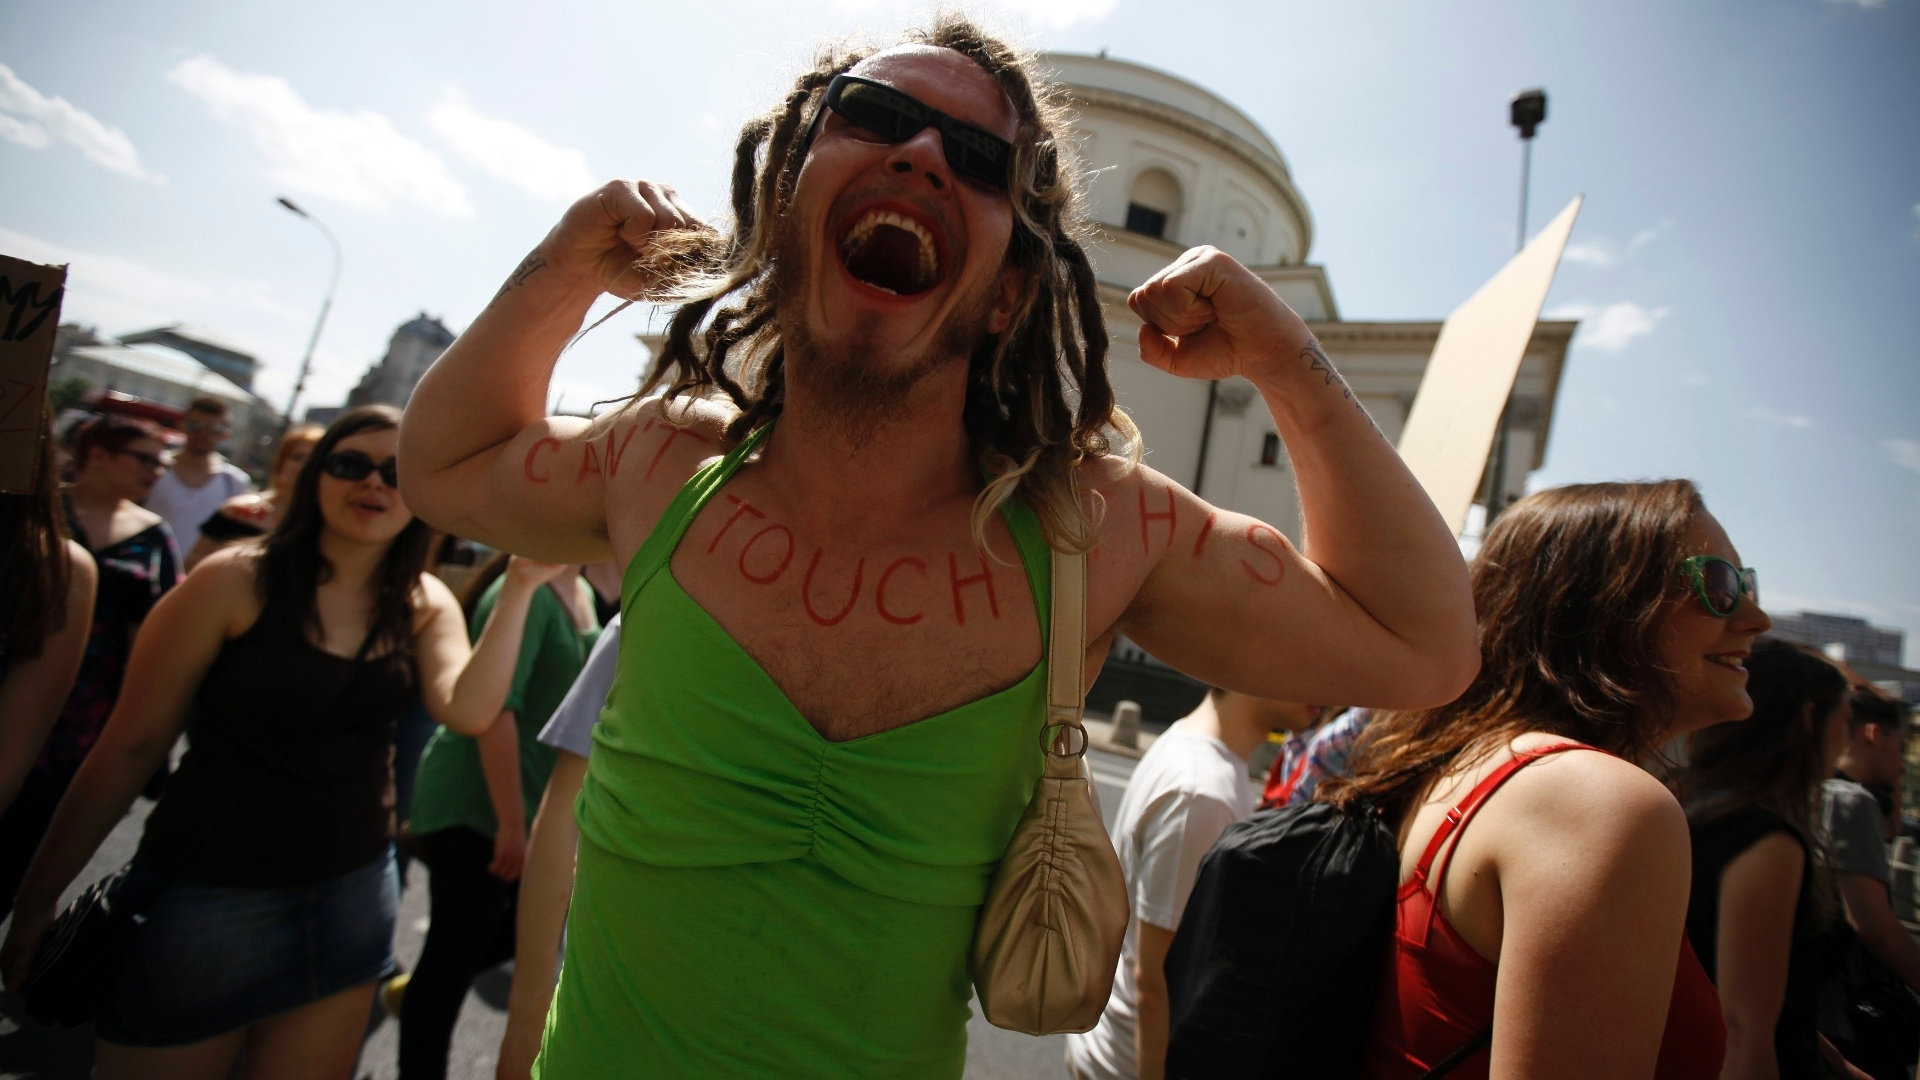 18.mai.2013 - Homem vestido de mulher participa da marcha das Vadias, em Varsvia, na Polnia, neste sbado (18)